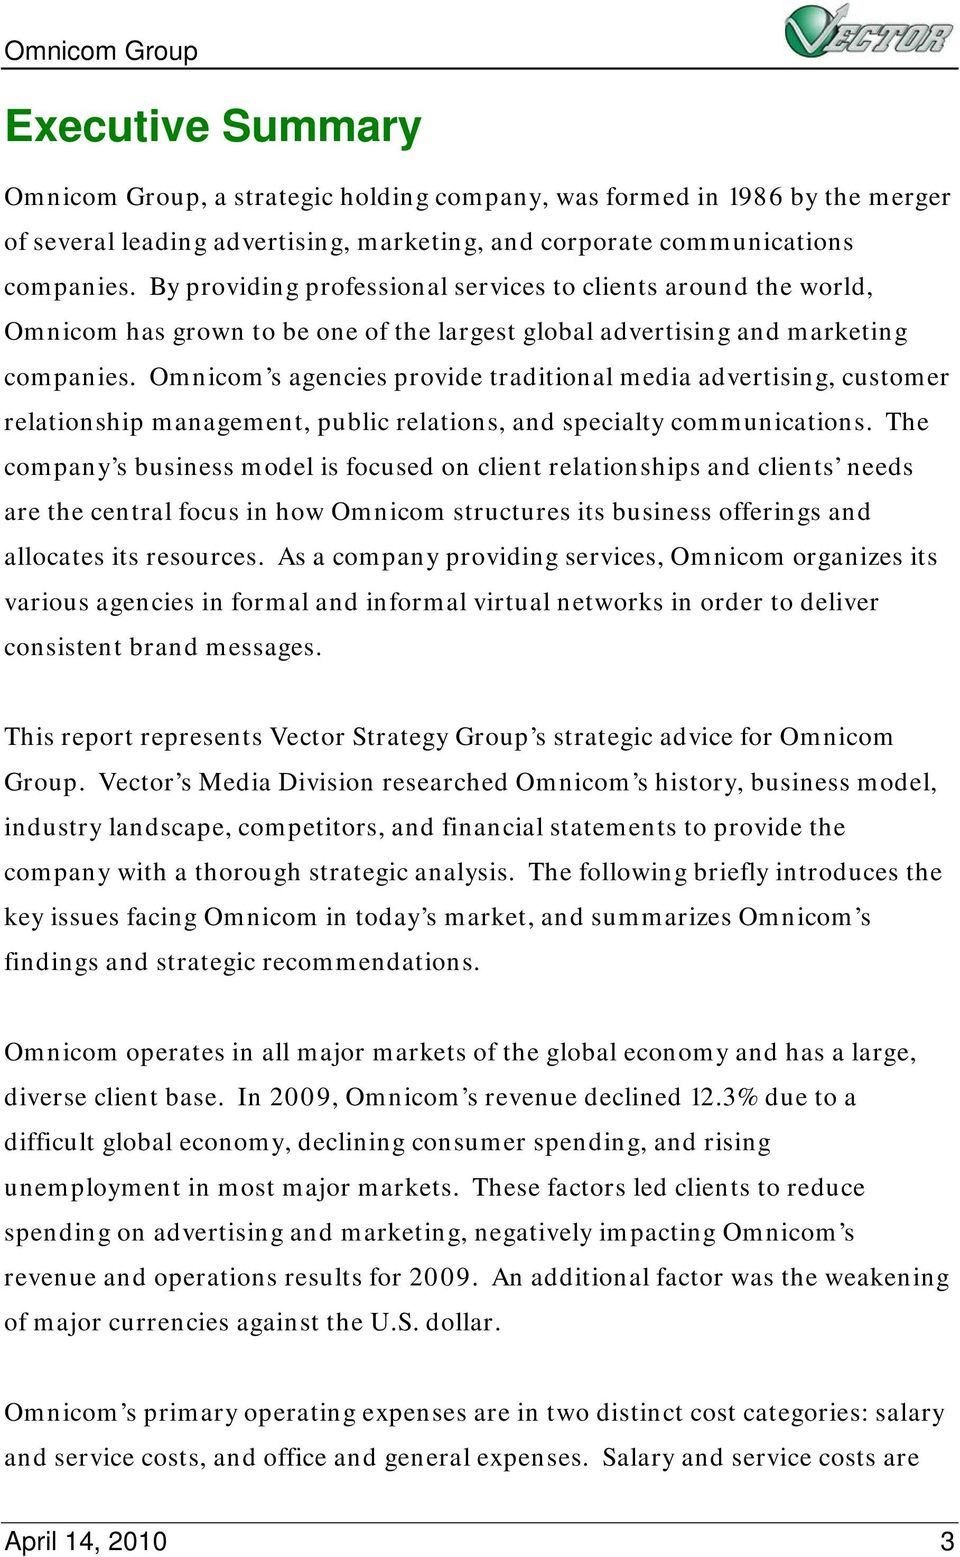 Omnicom s agencies provide traditional media advertising, customer relationship management, public relations, and specialty communications.